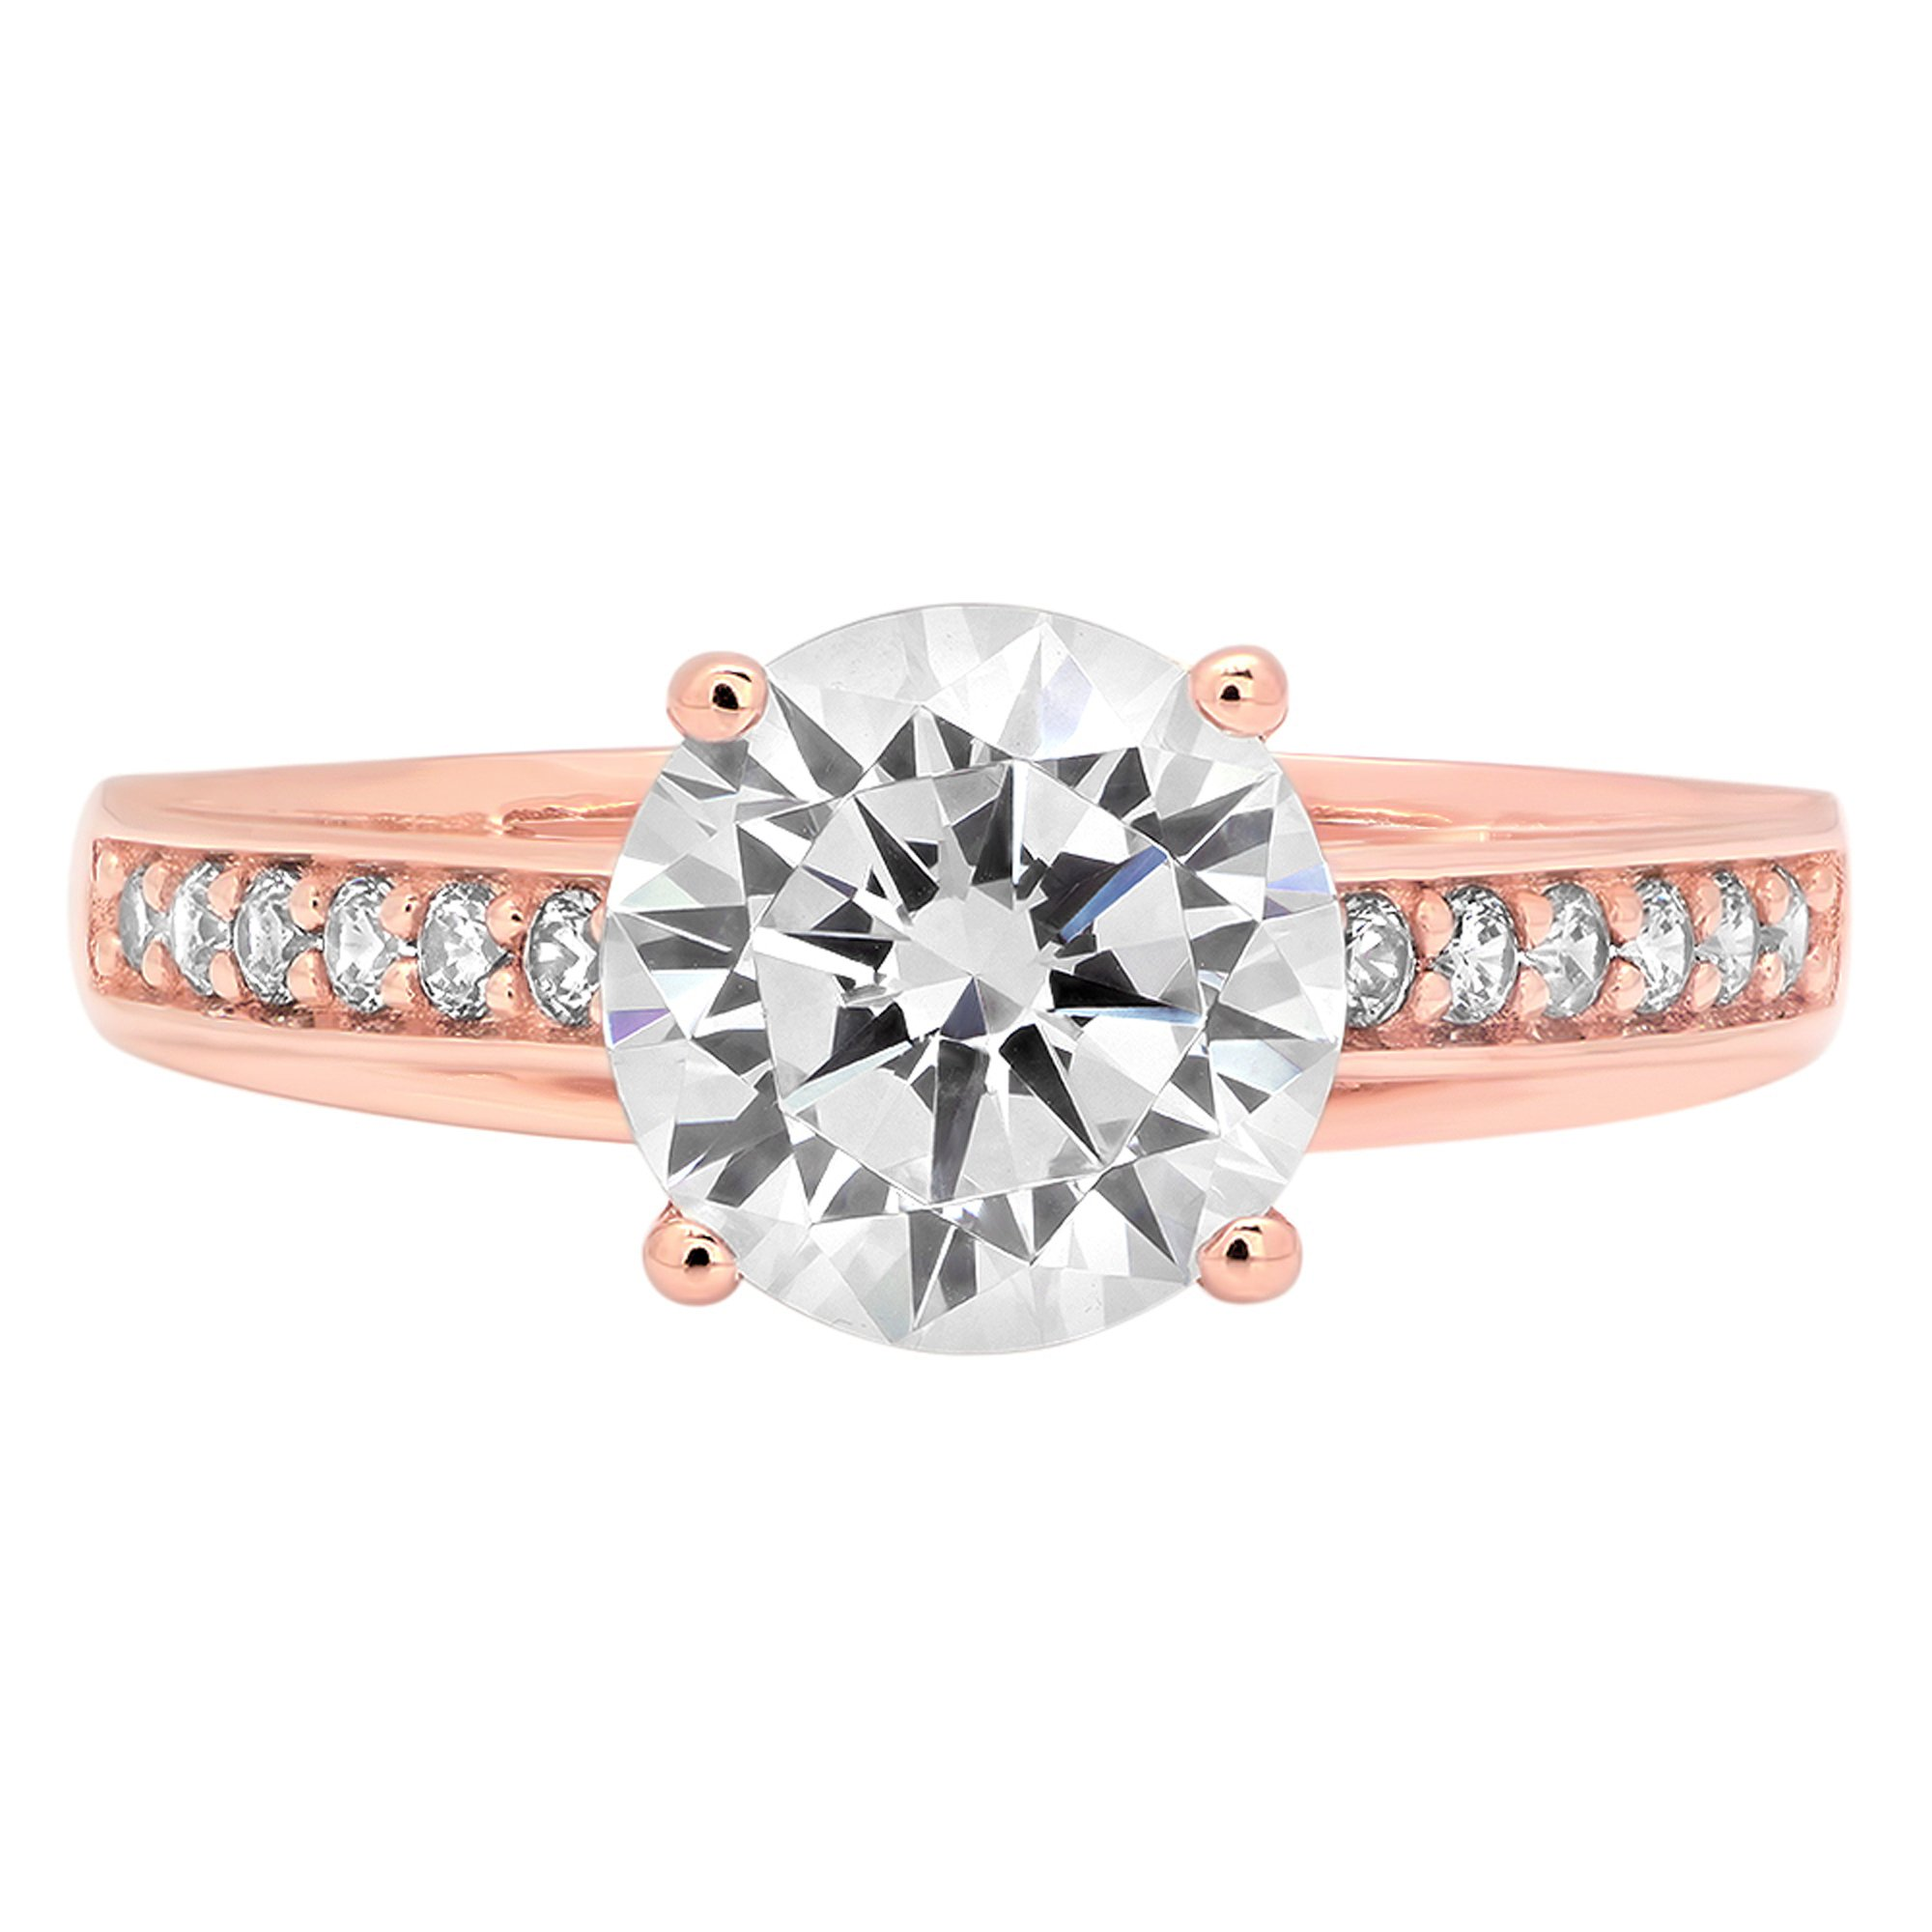 2.31ct Brilliant Round Cut Designer Simulated Diamond Accent Solitaire Statement Ring for Women Solid 14k Rose Gold